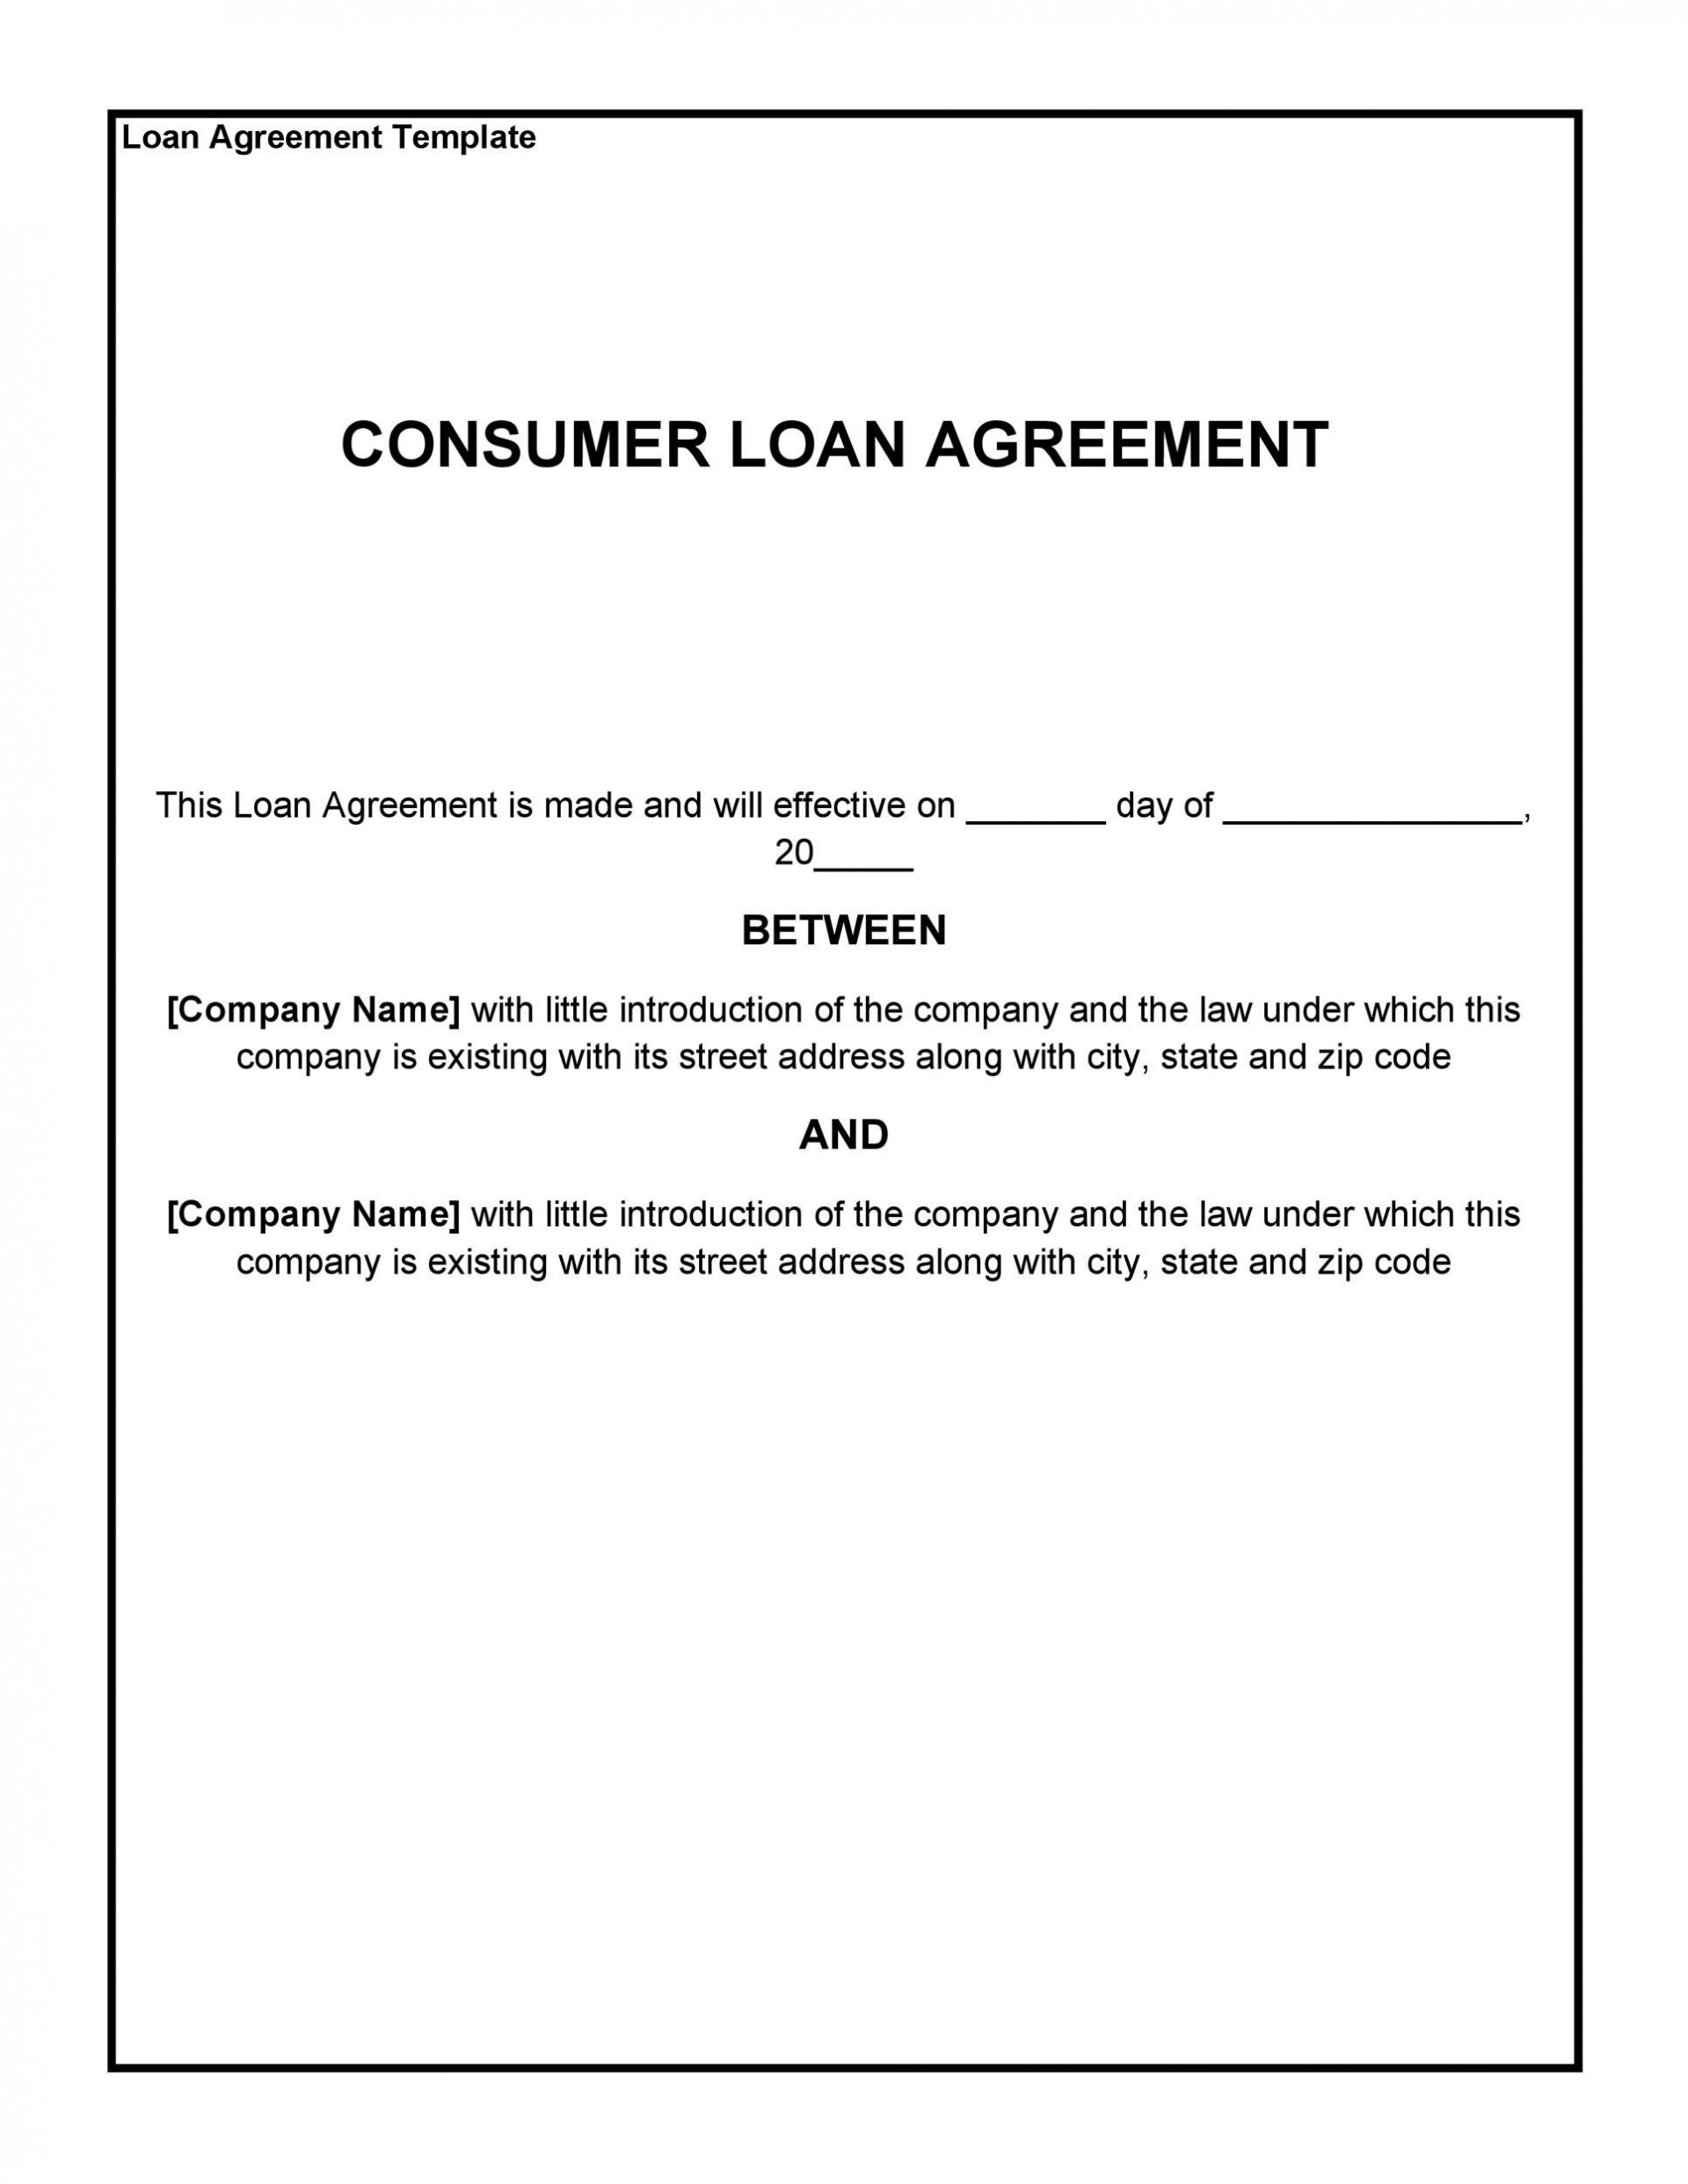 008 Singular Family Loan Agreement Template Highest Clarity  Nz Uk Free1920